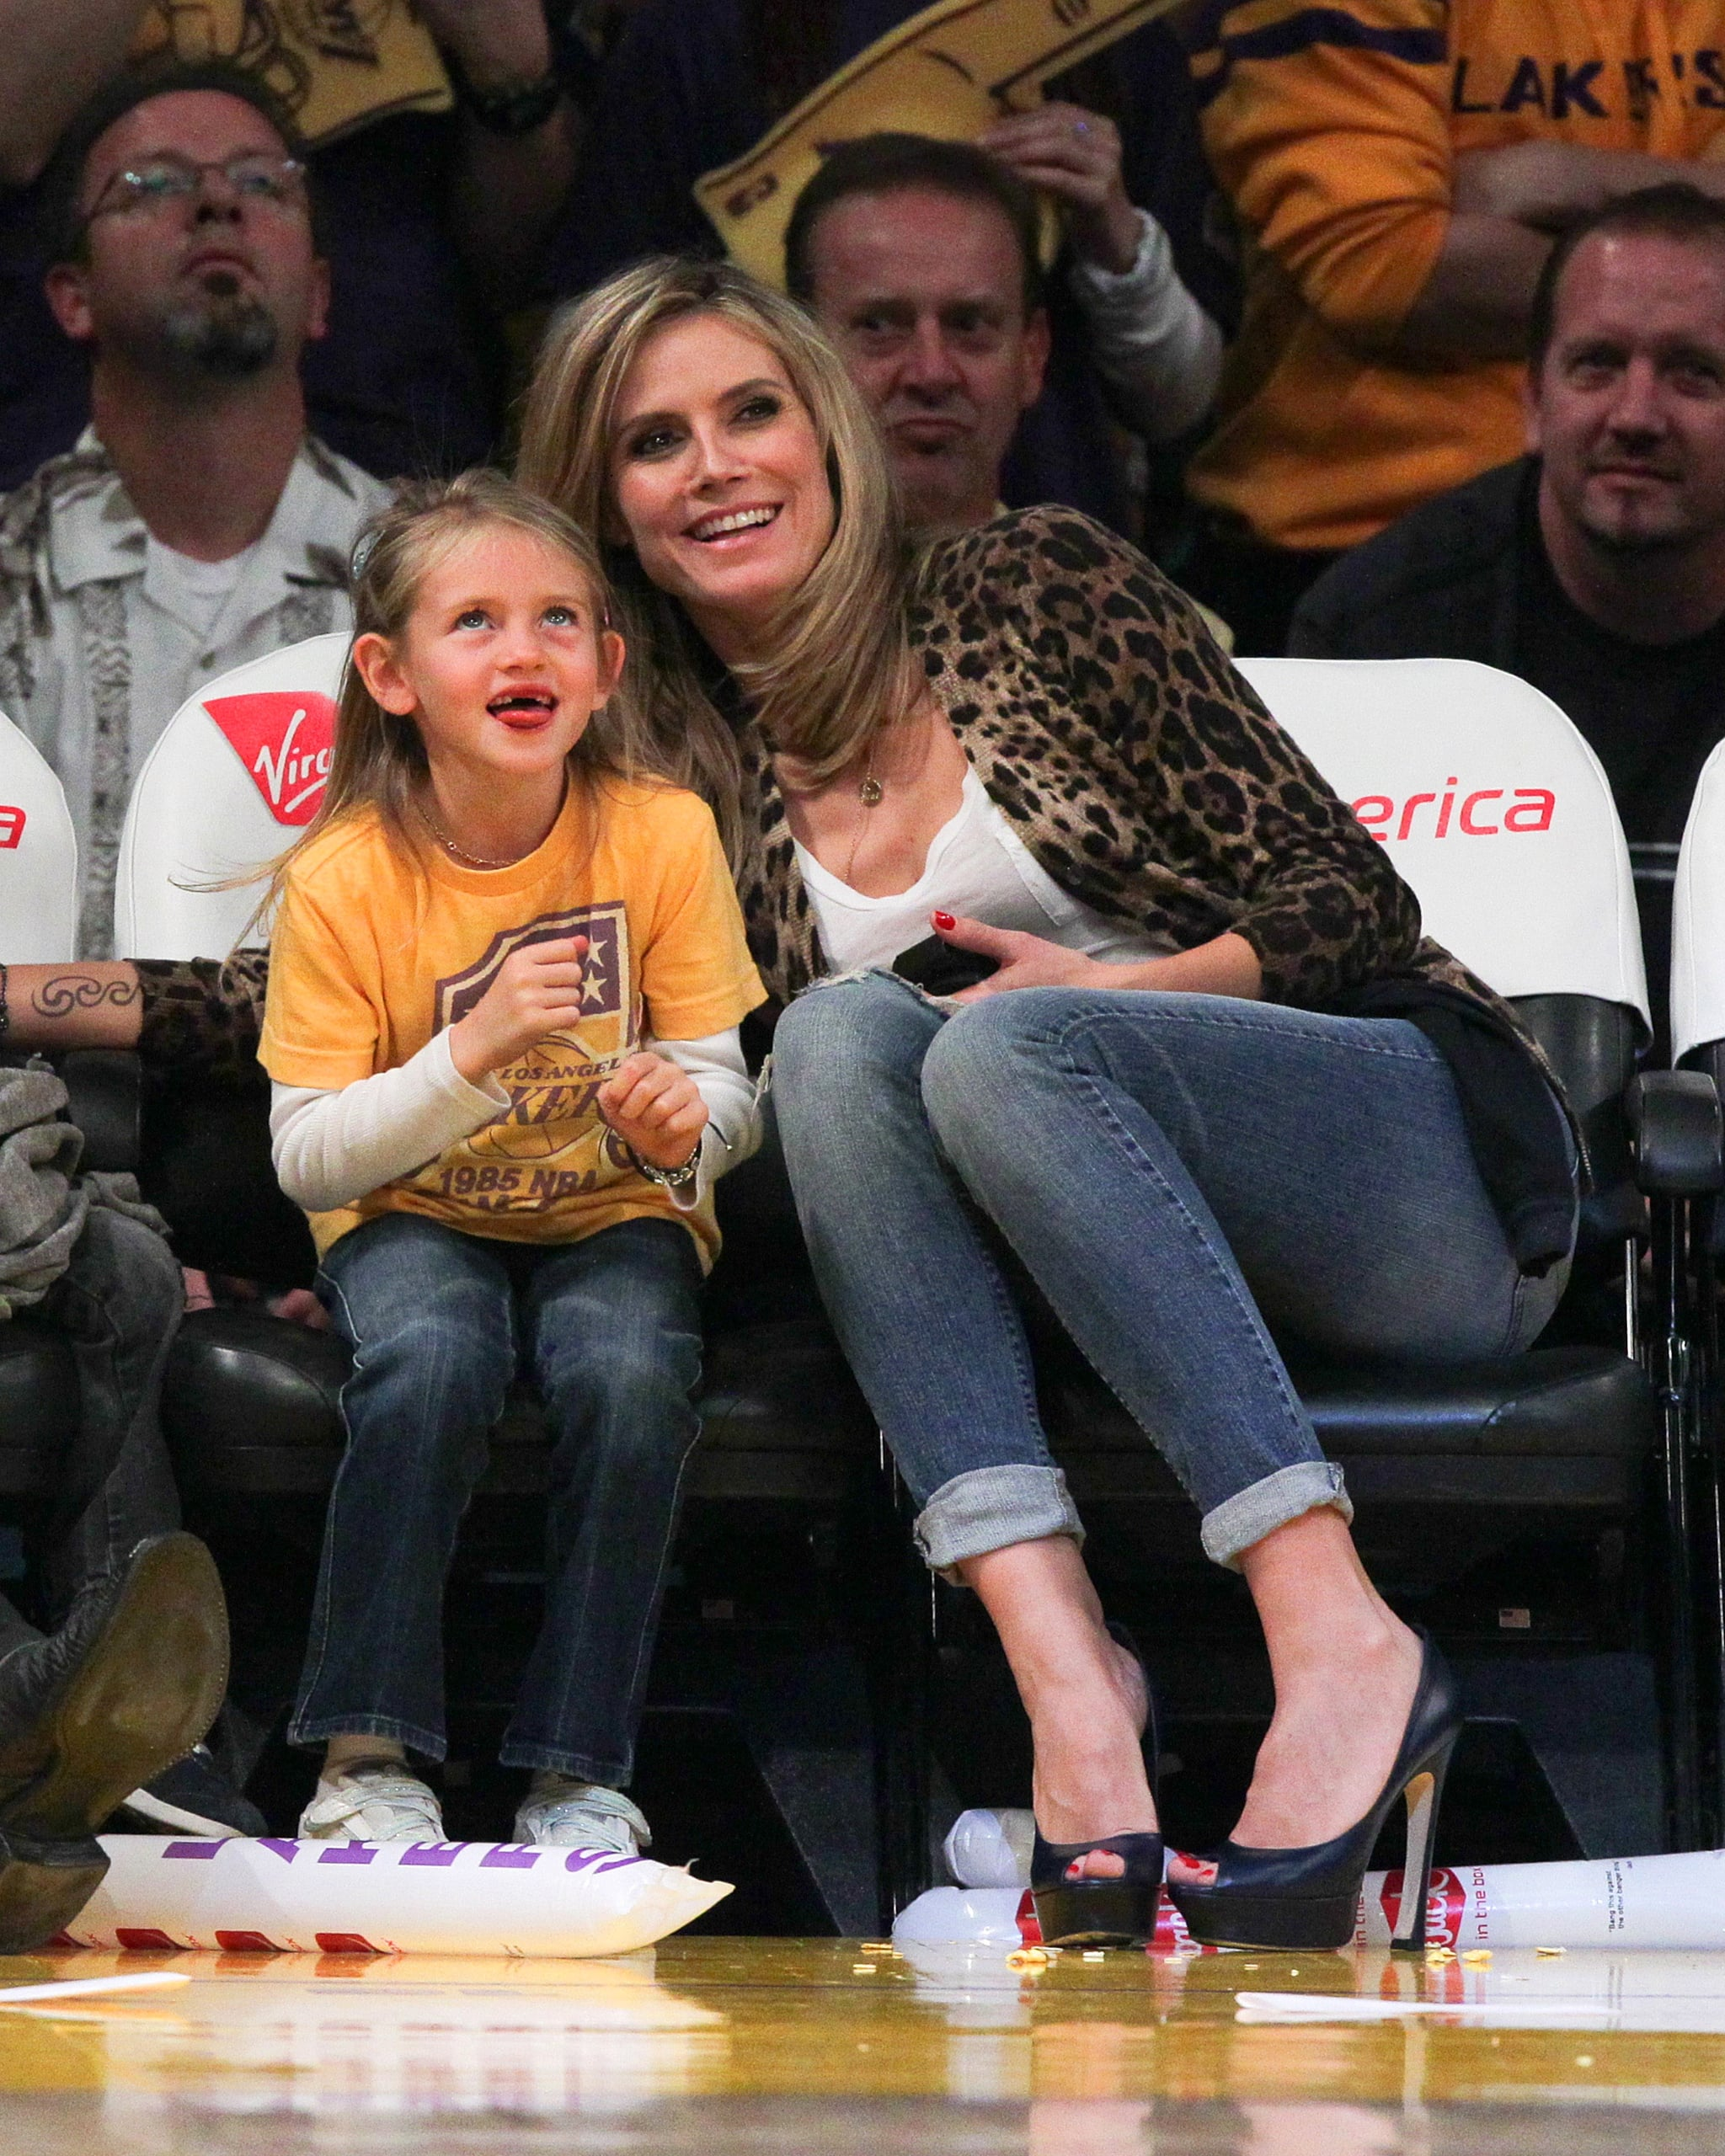 Lindsay Auto Group >> Heidi Klum, Seal, Tom Hardy, Sacha Baron Cohen, Jack Nicholson, Hilary Swank at Lakers Game ...